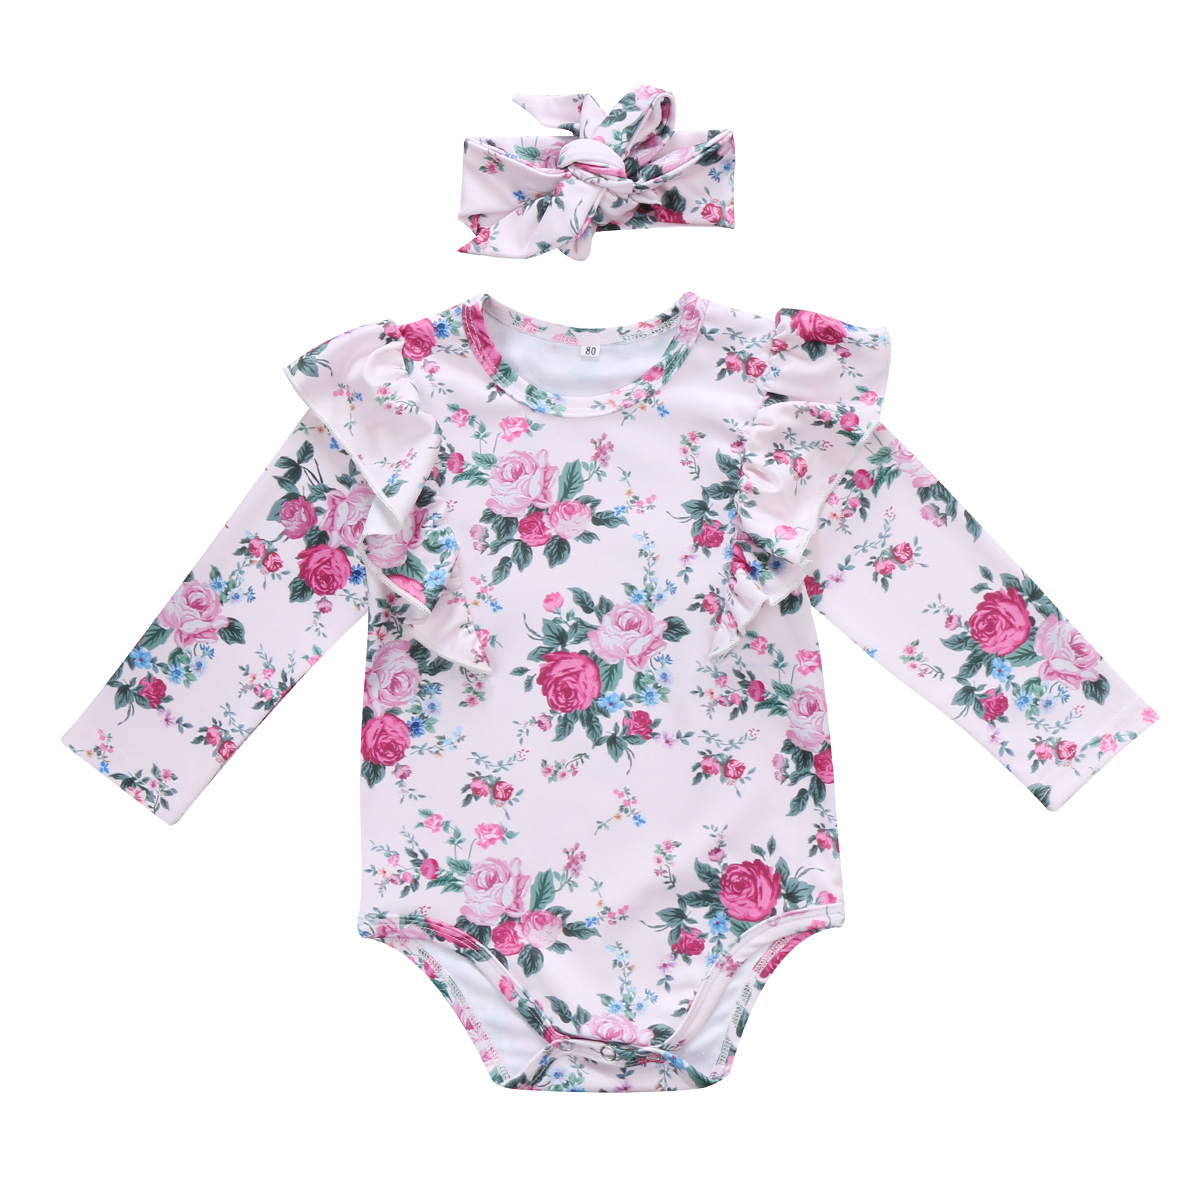 Baby Girl Vintage Floral Romper Jumpsuit+Headband Clothes Playsuit Outfit Comfortable Clothes